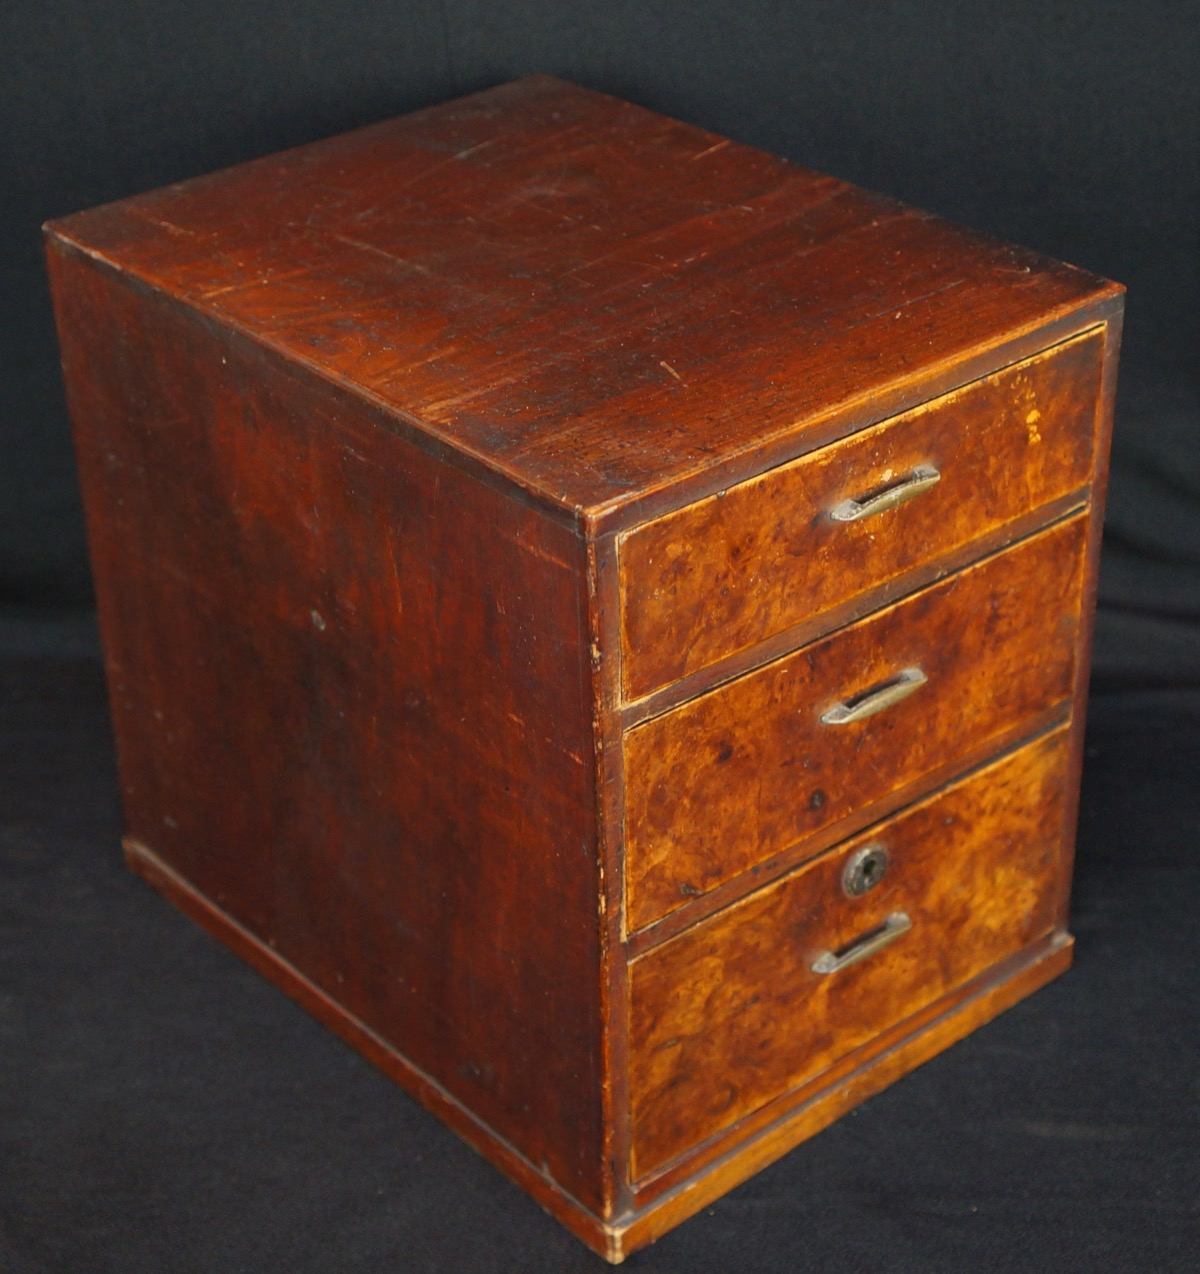 Vintage japanese jewelry box small cabinet 1900s japan for Vintage antique jewelry box